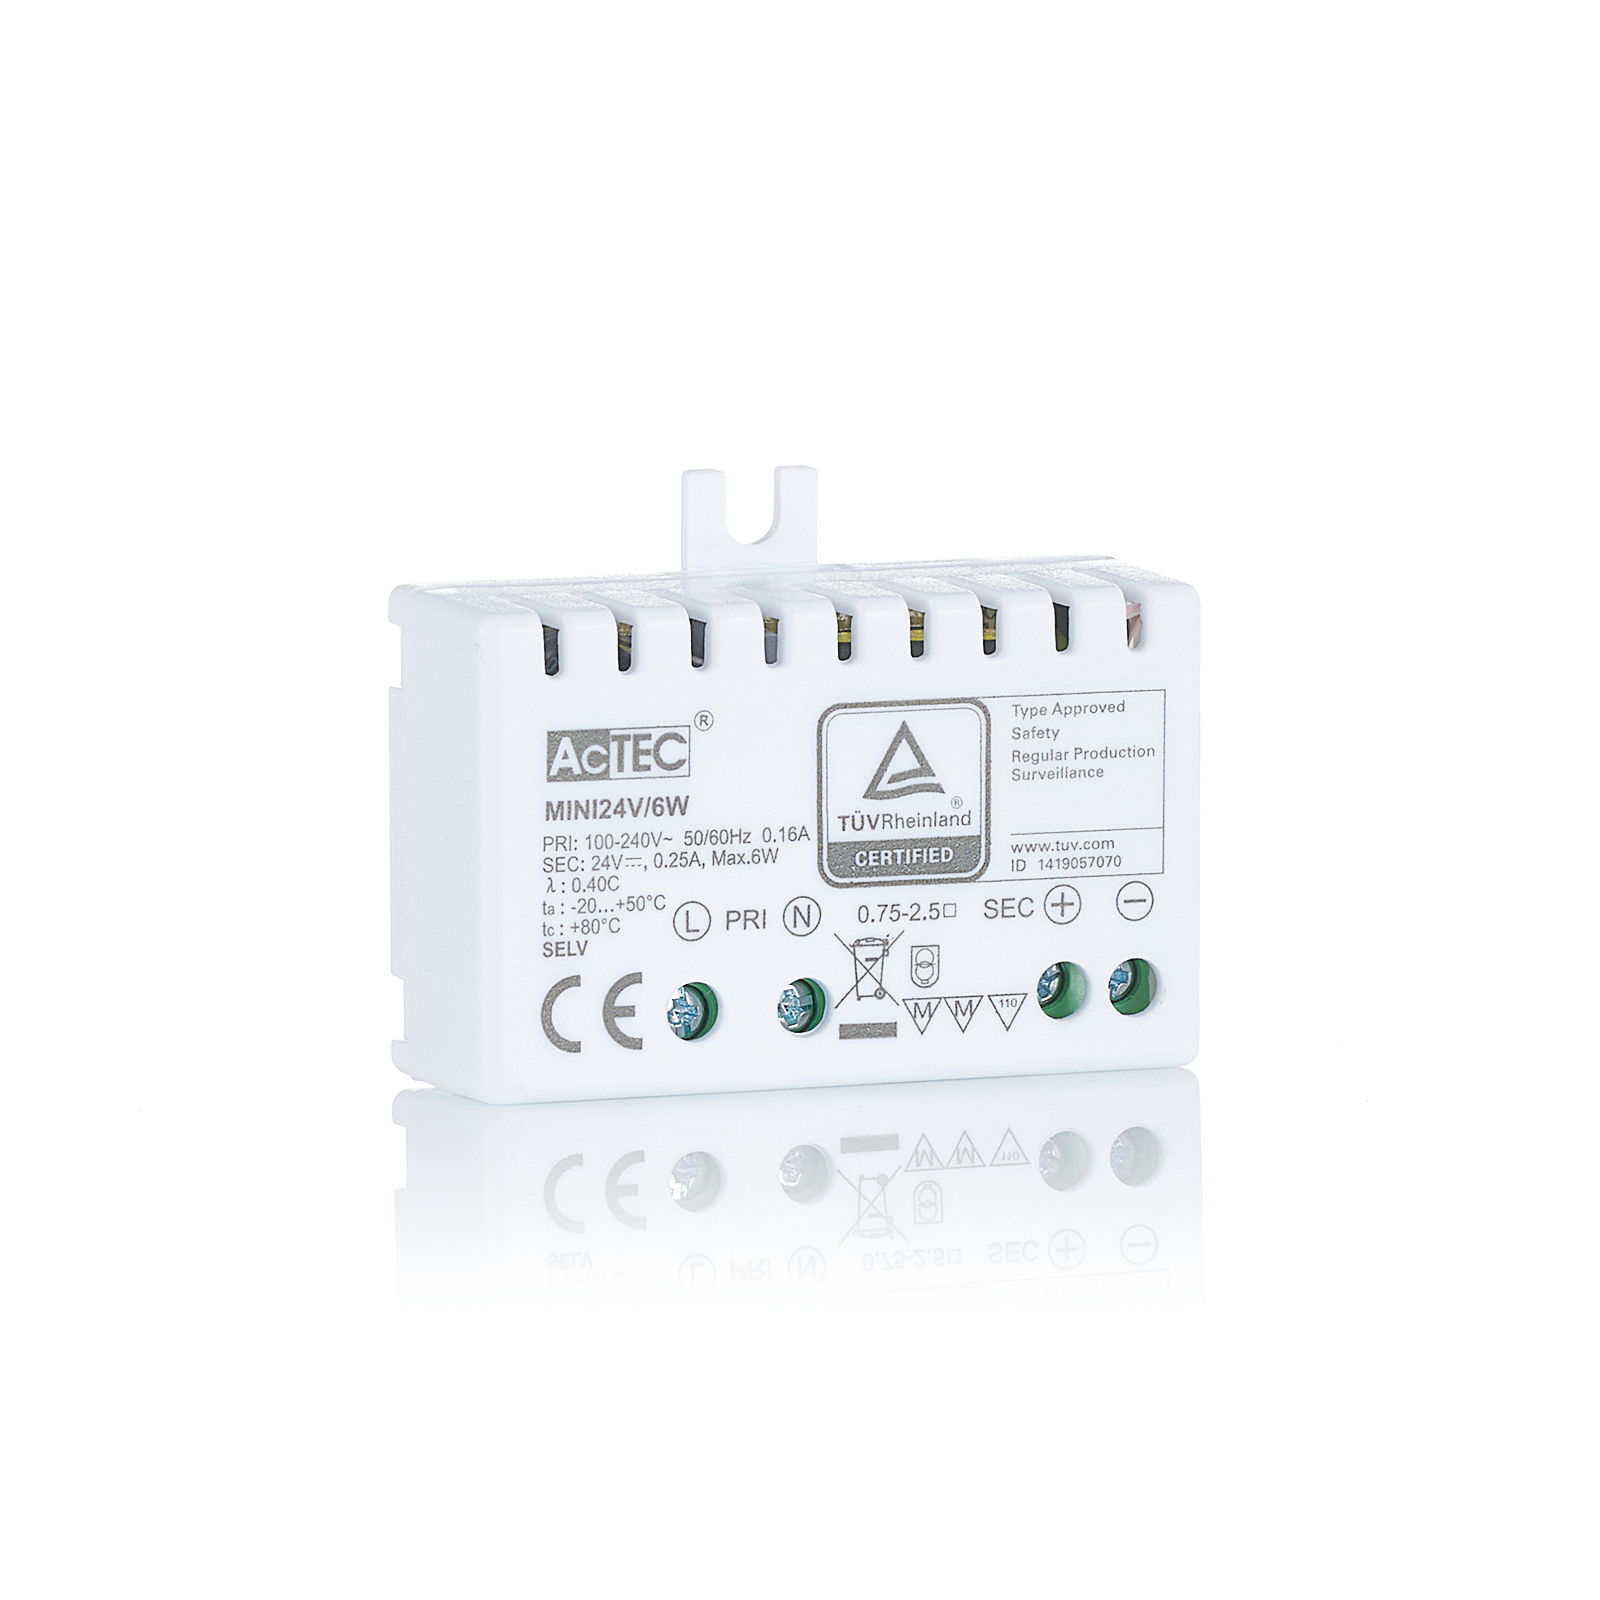 AcTEC Mini LED-driver CV 24 V, 6 W, IP20